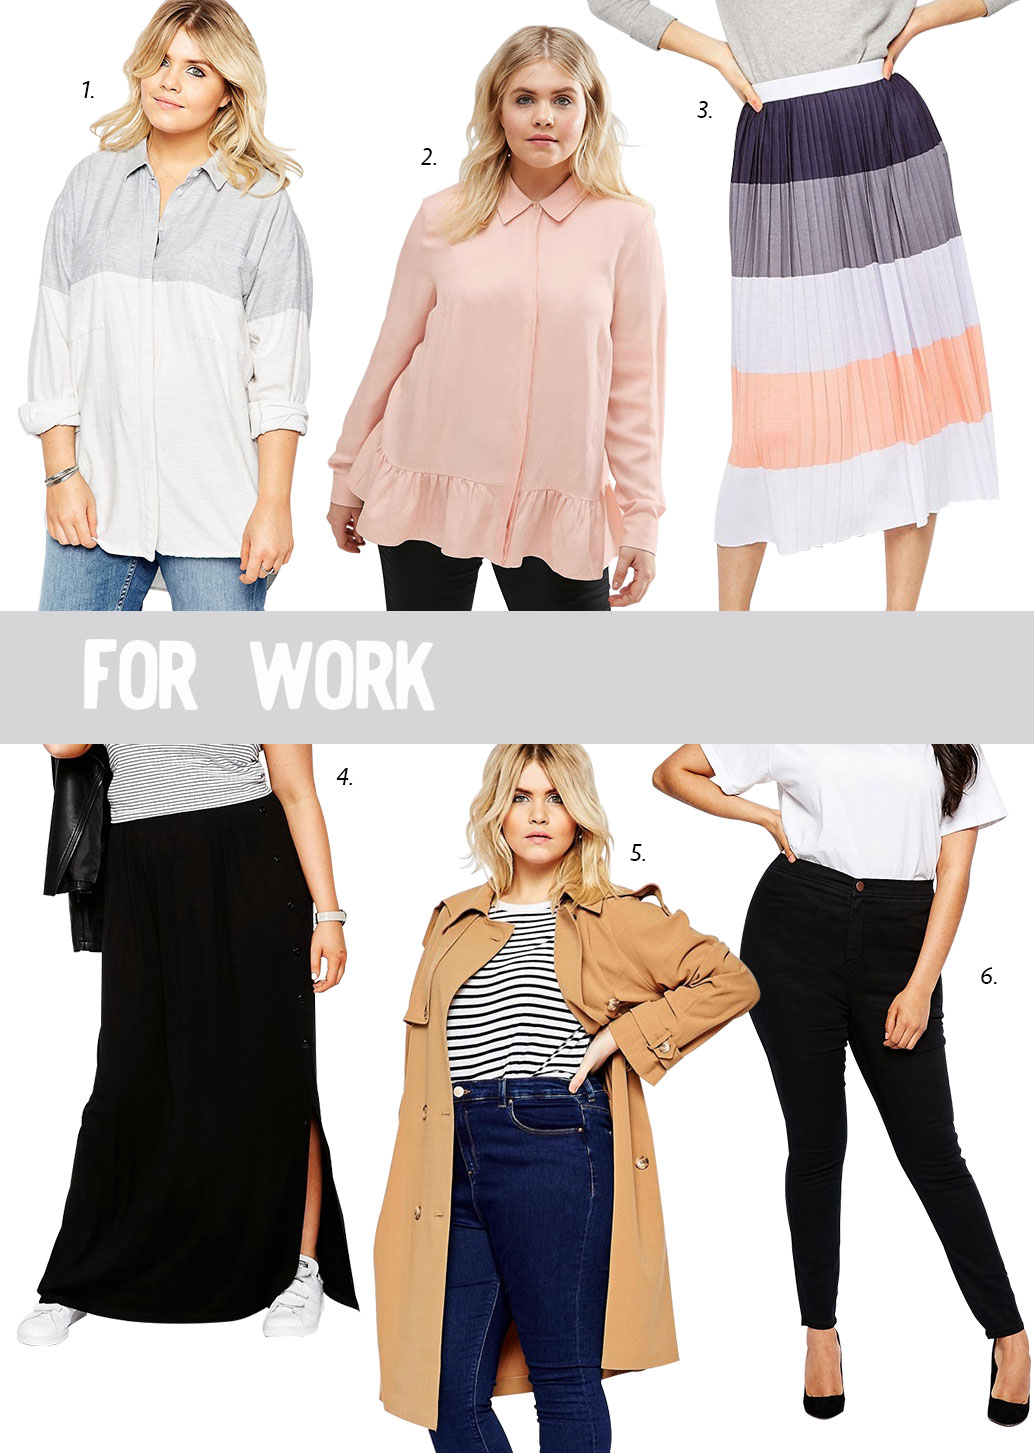 Winter Wardrobe Wishlist For Work | EmmaLouisa.com